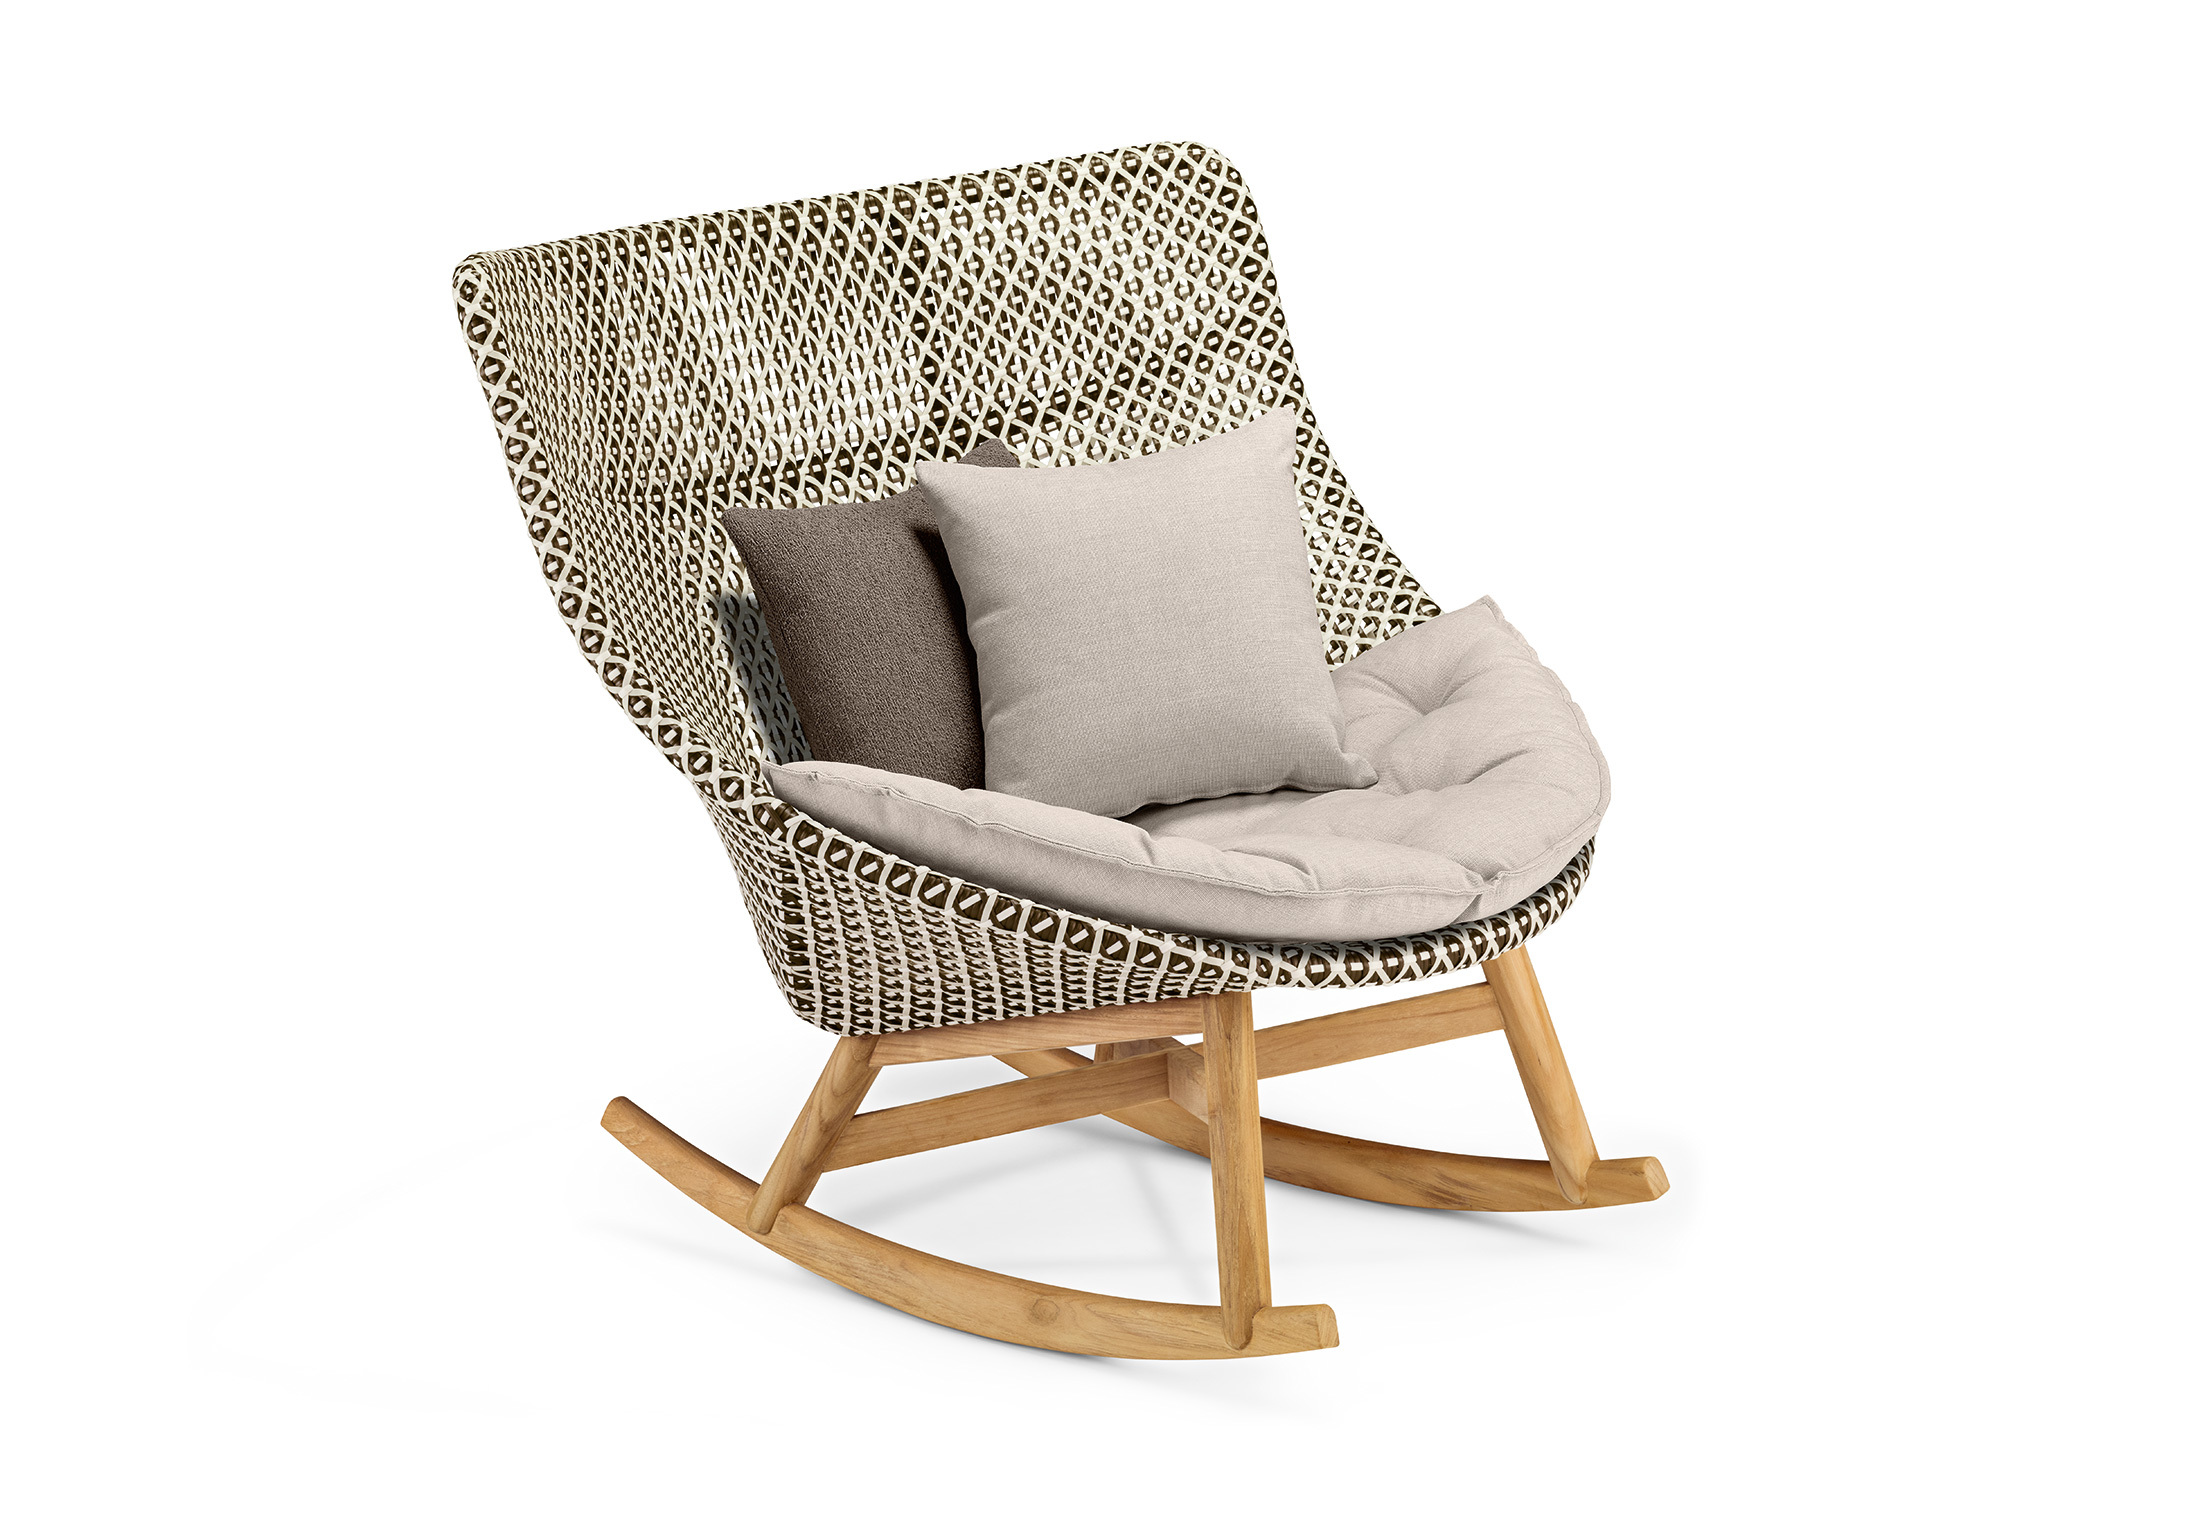 Mbrace Rocking Chair By Dedon Stylepark